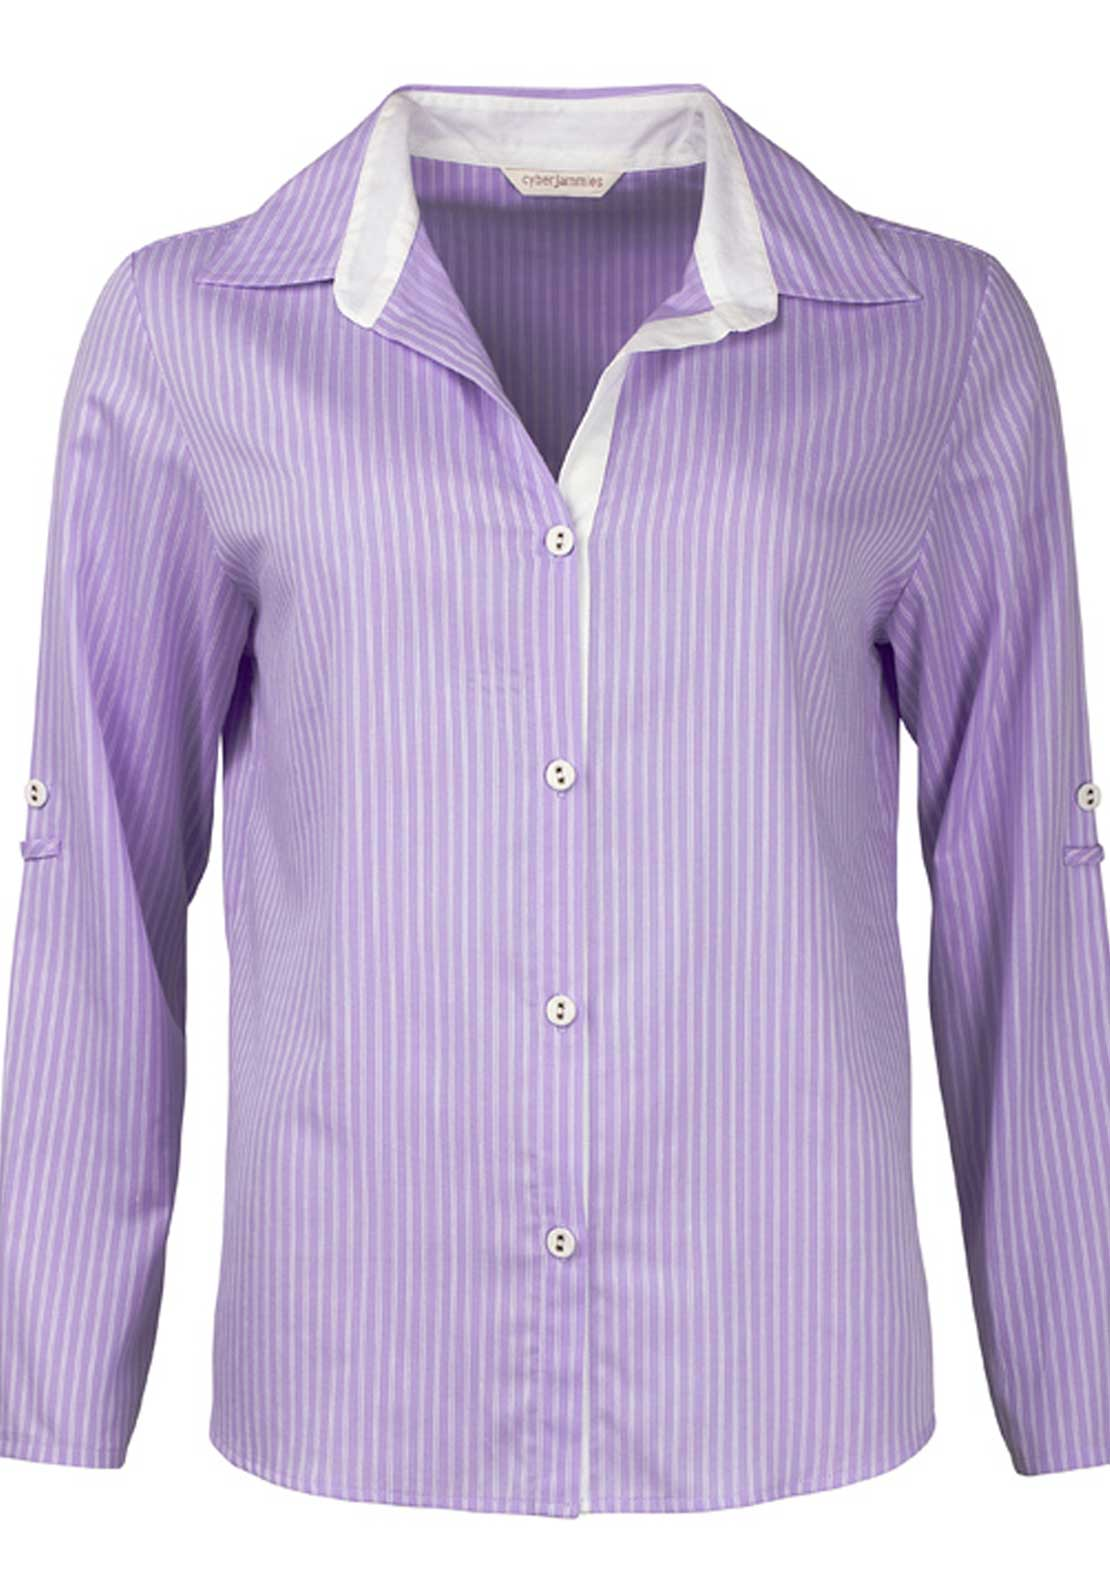 Cyberjammies Patchwork Aviary Striped Pyjama Top, Lilac